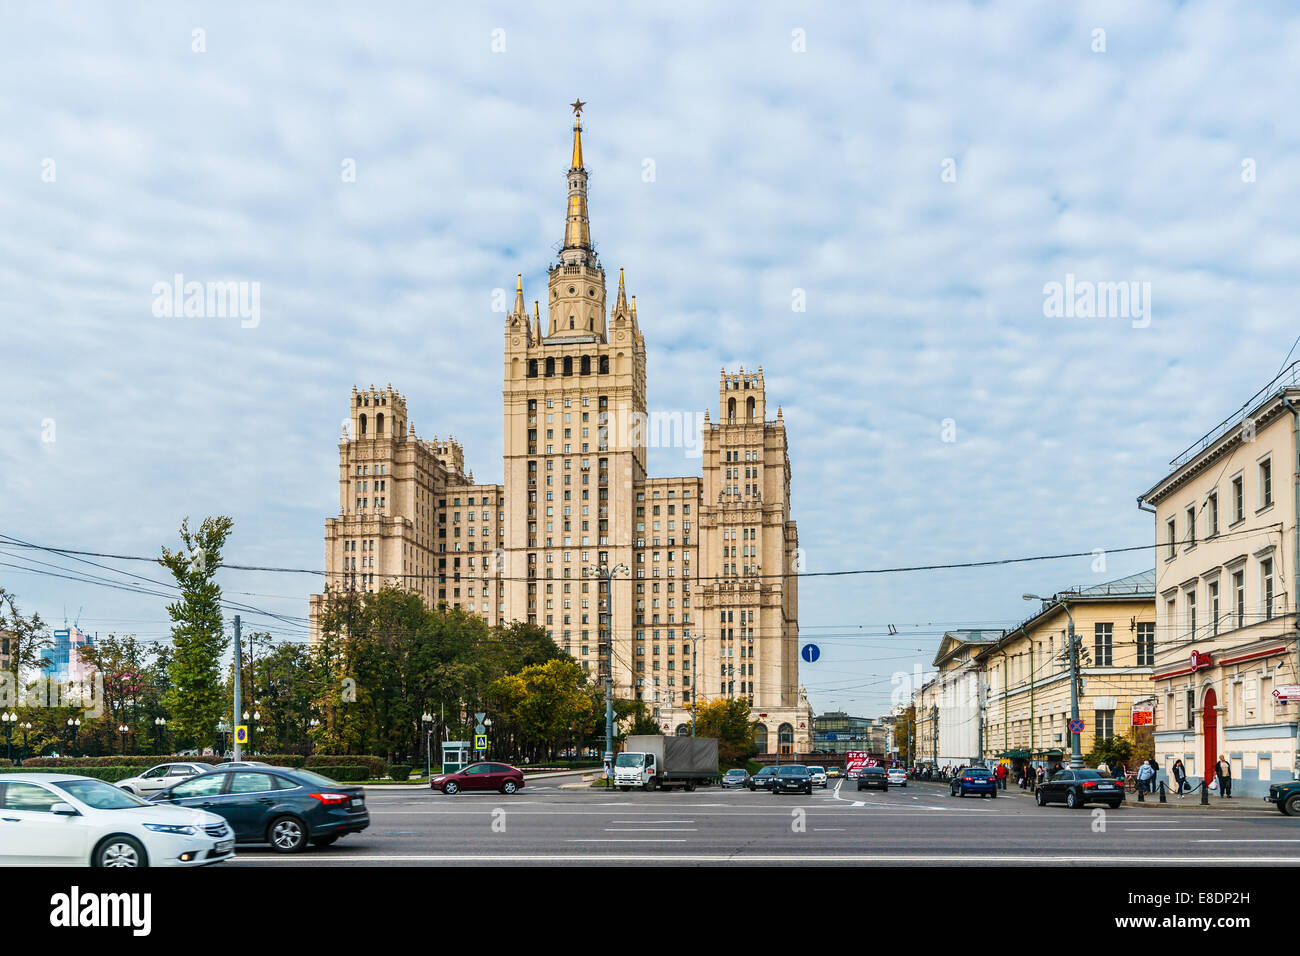 Not very high exchange rate can be observed in Kudrinskaya square by the famous tall residential building. Stock Photo